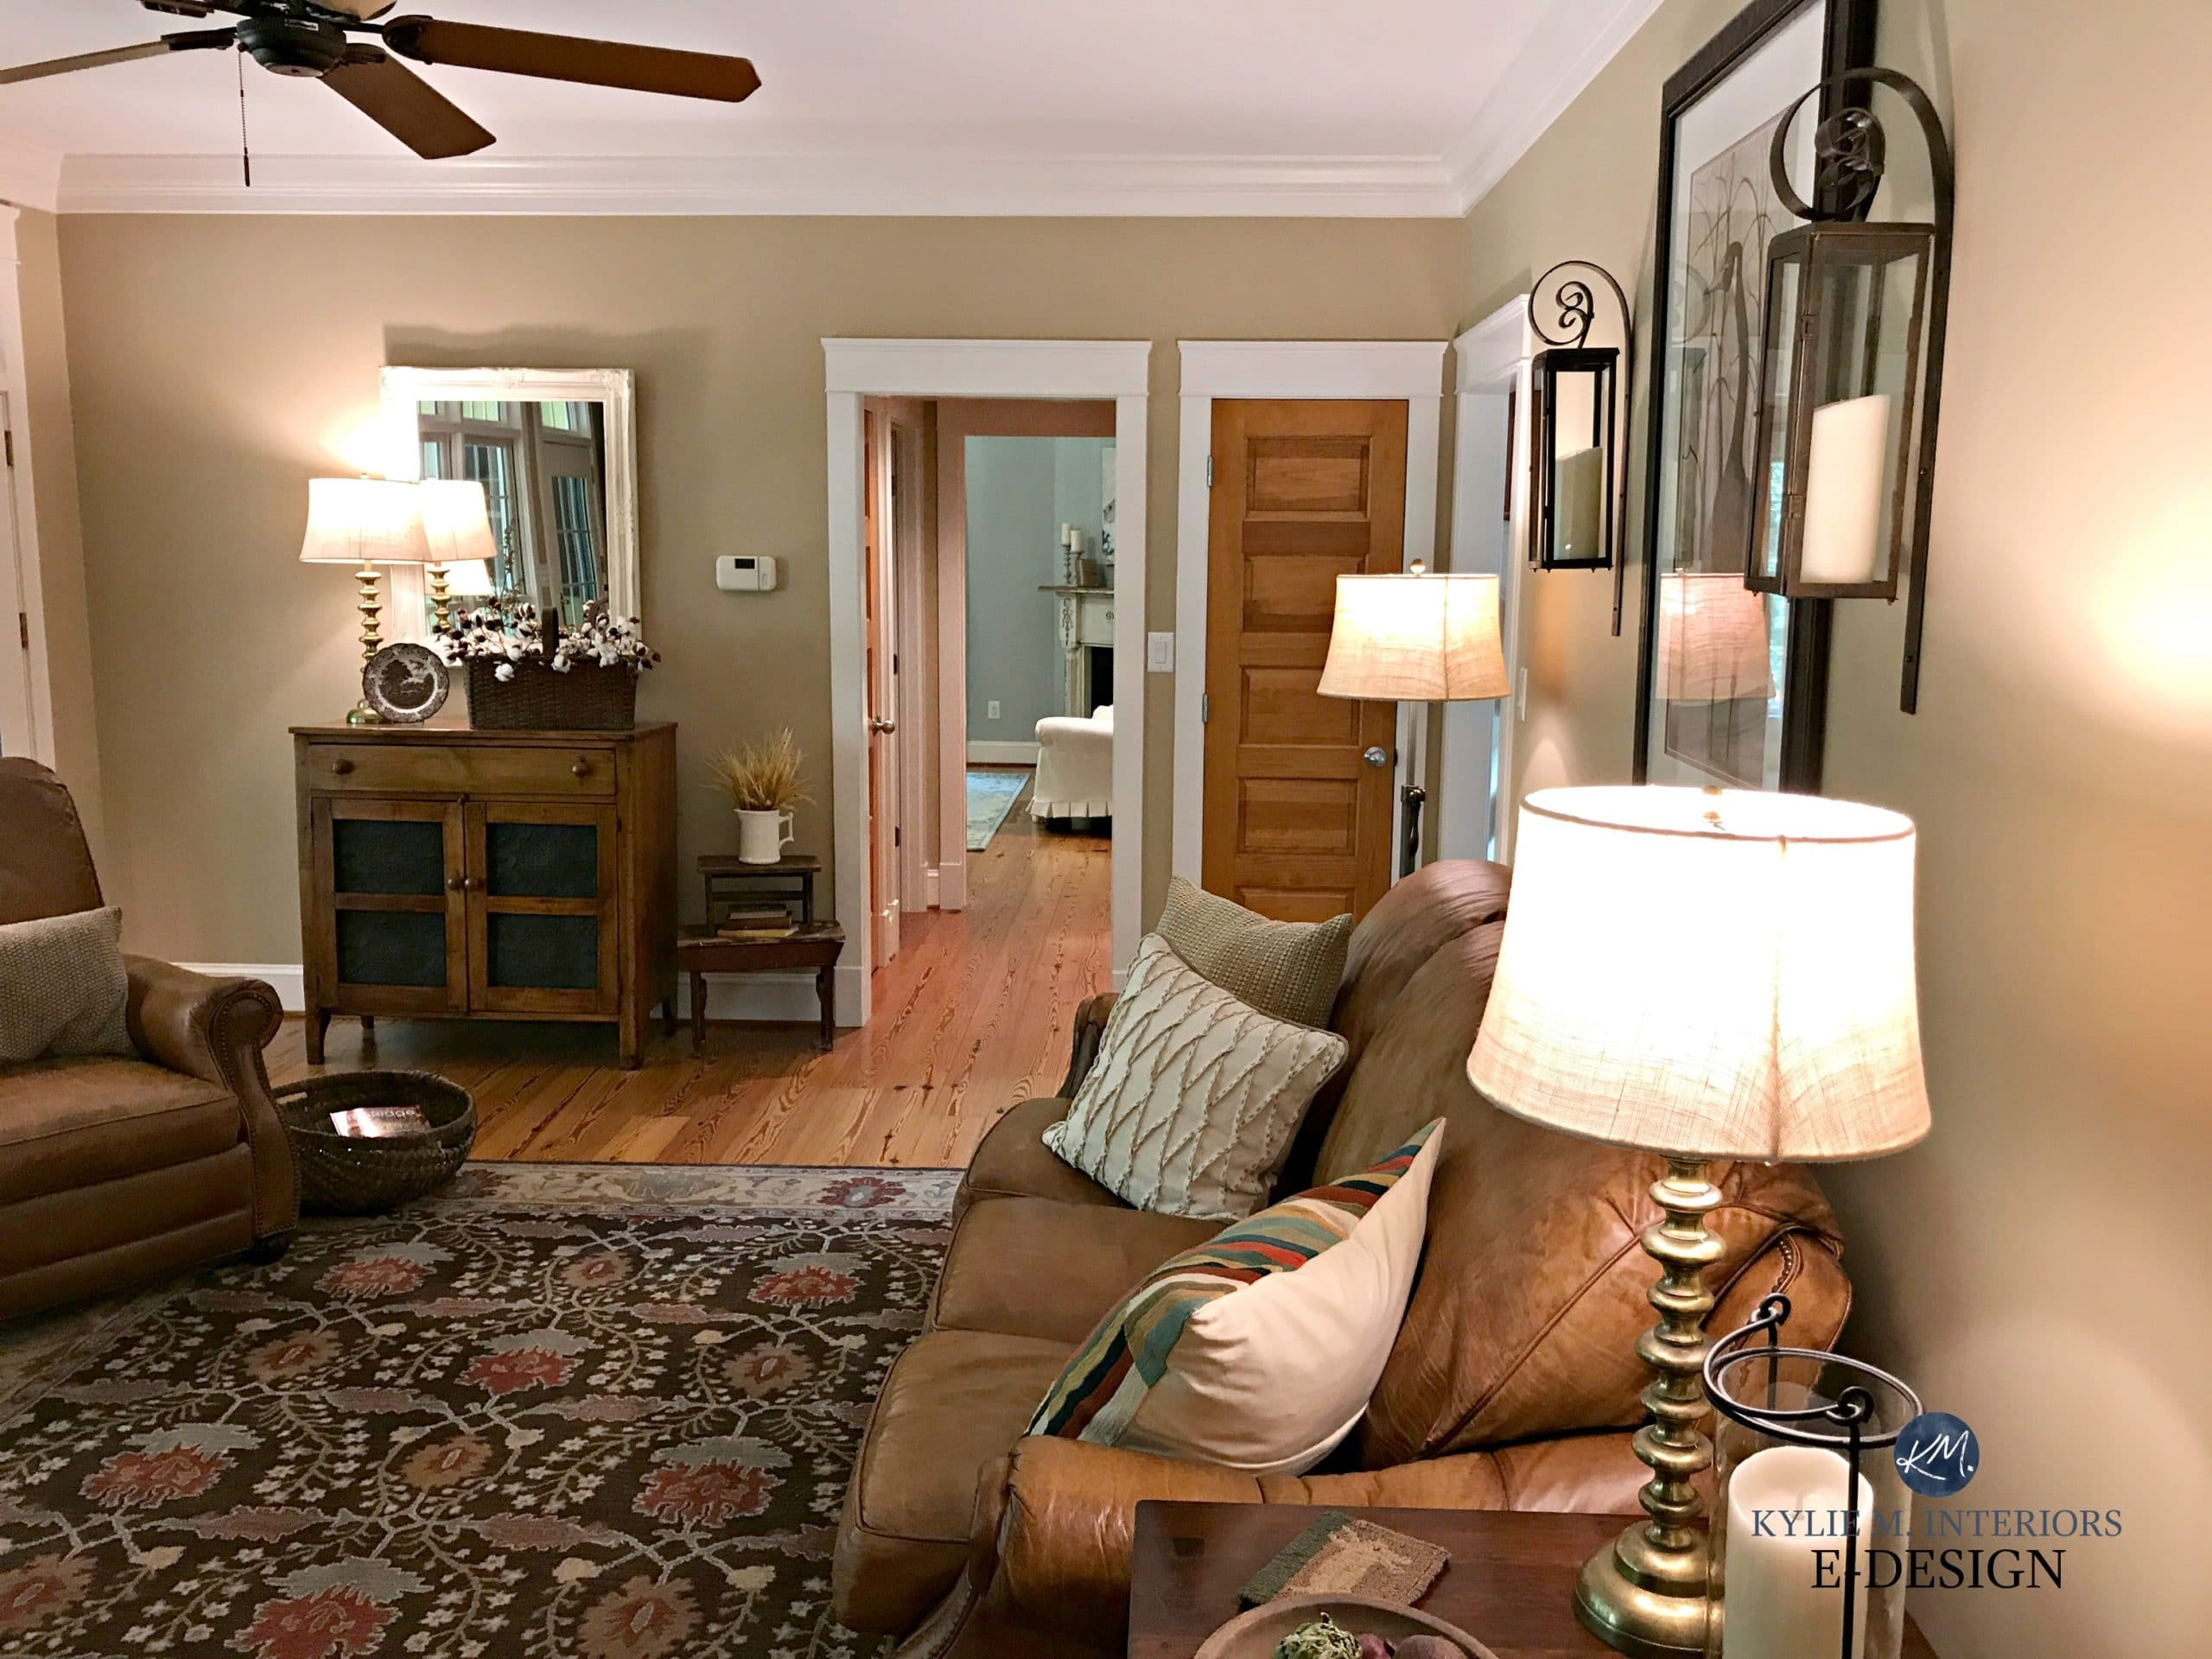 Benjamin Moore Lenox Tan In Farmhouse Country Style Living Room. Brown  Leather Furniture, Pine Wood Floor, Doors. Kylie M E Design, Virtual And  Online ...